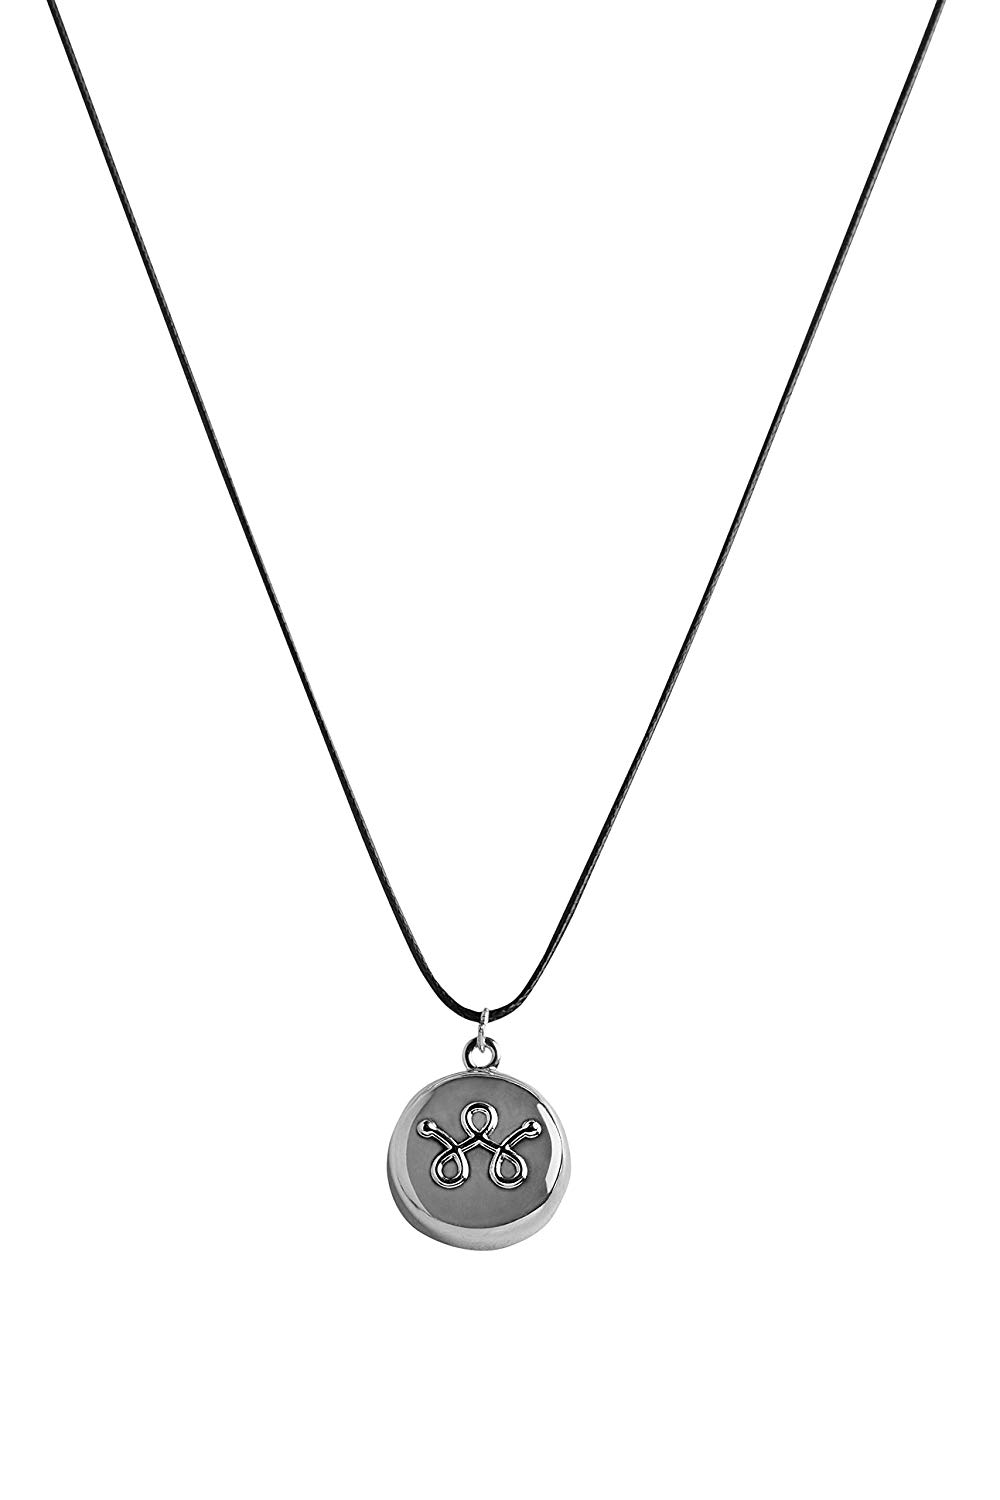 Silver Leather Necklace Personal Safety Device 10